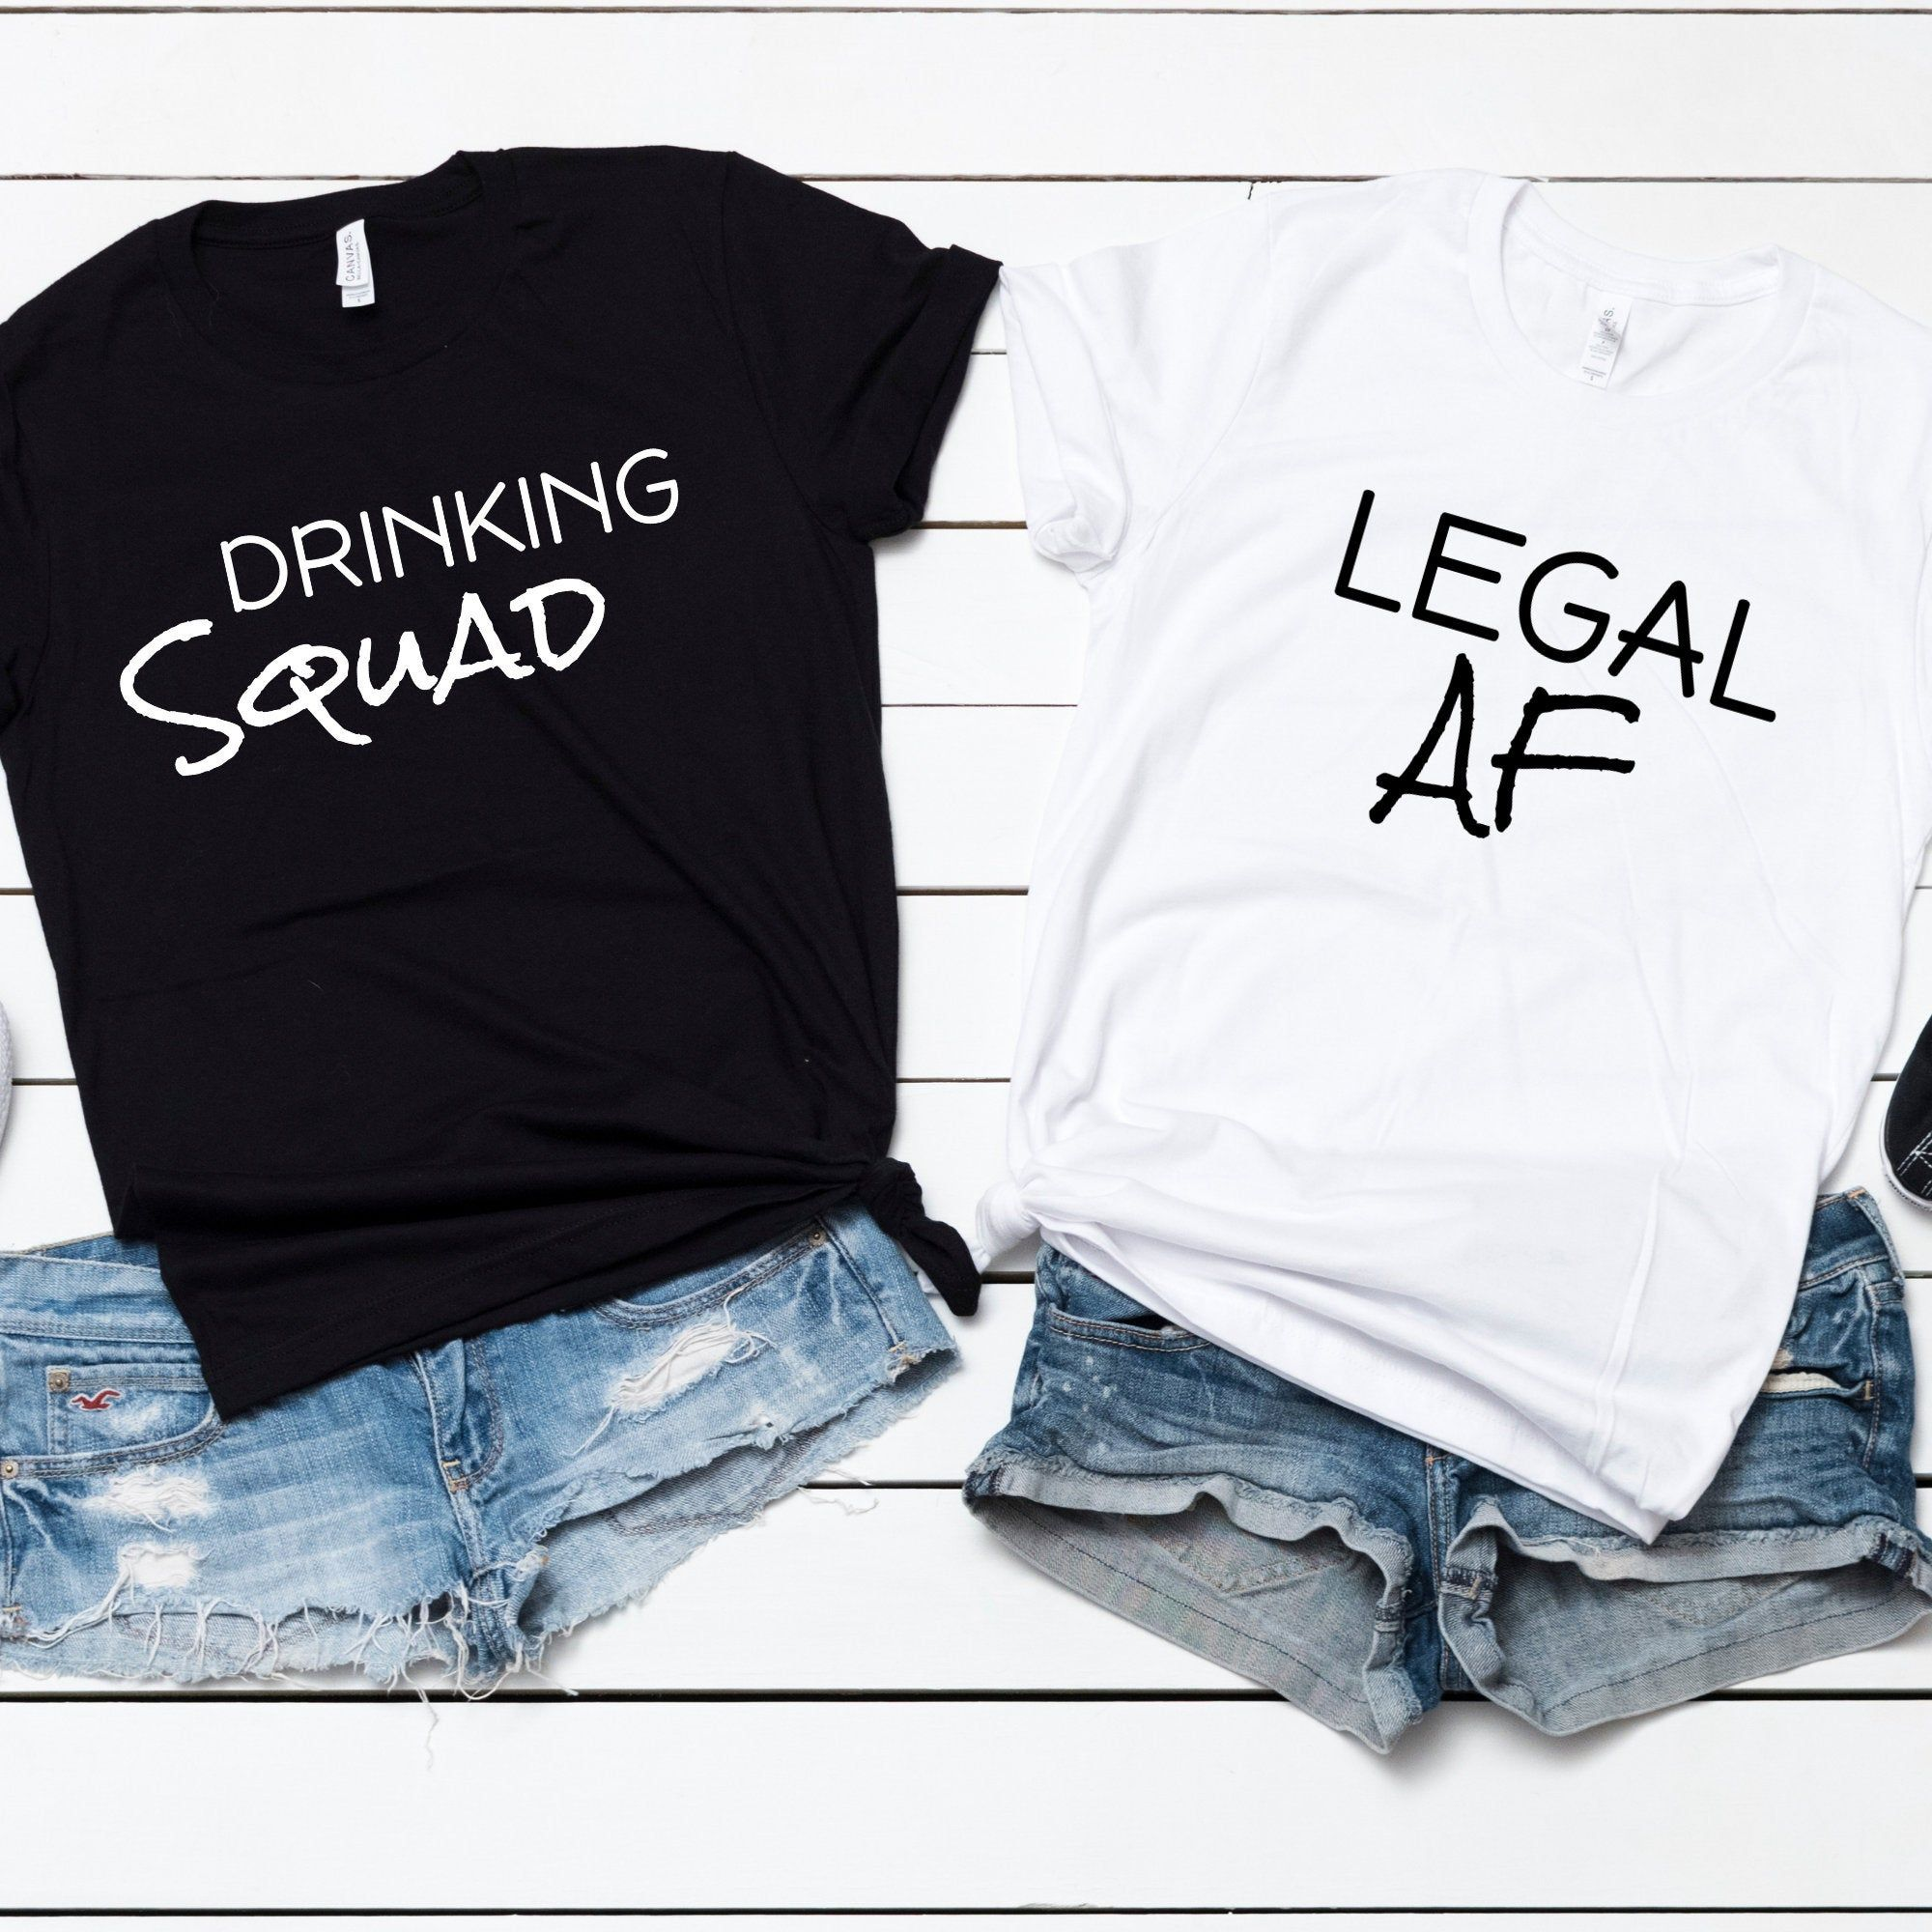 Legal AF, 21st Birthday Shirt, Finally Legal, 21 and Legal, 21 years old, 21st Birthday, Birthday Squad Shirt, Unisex T-Shirt